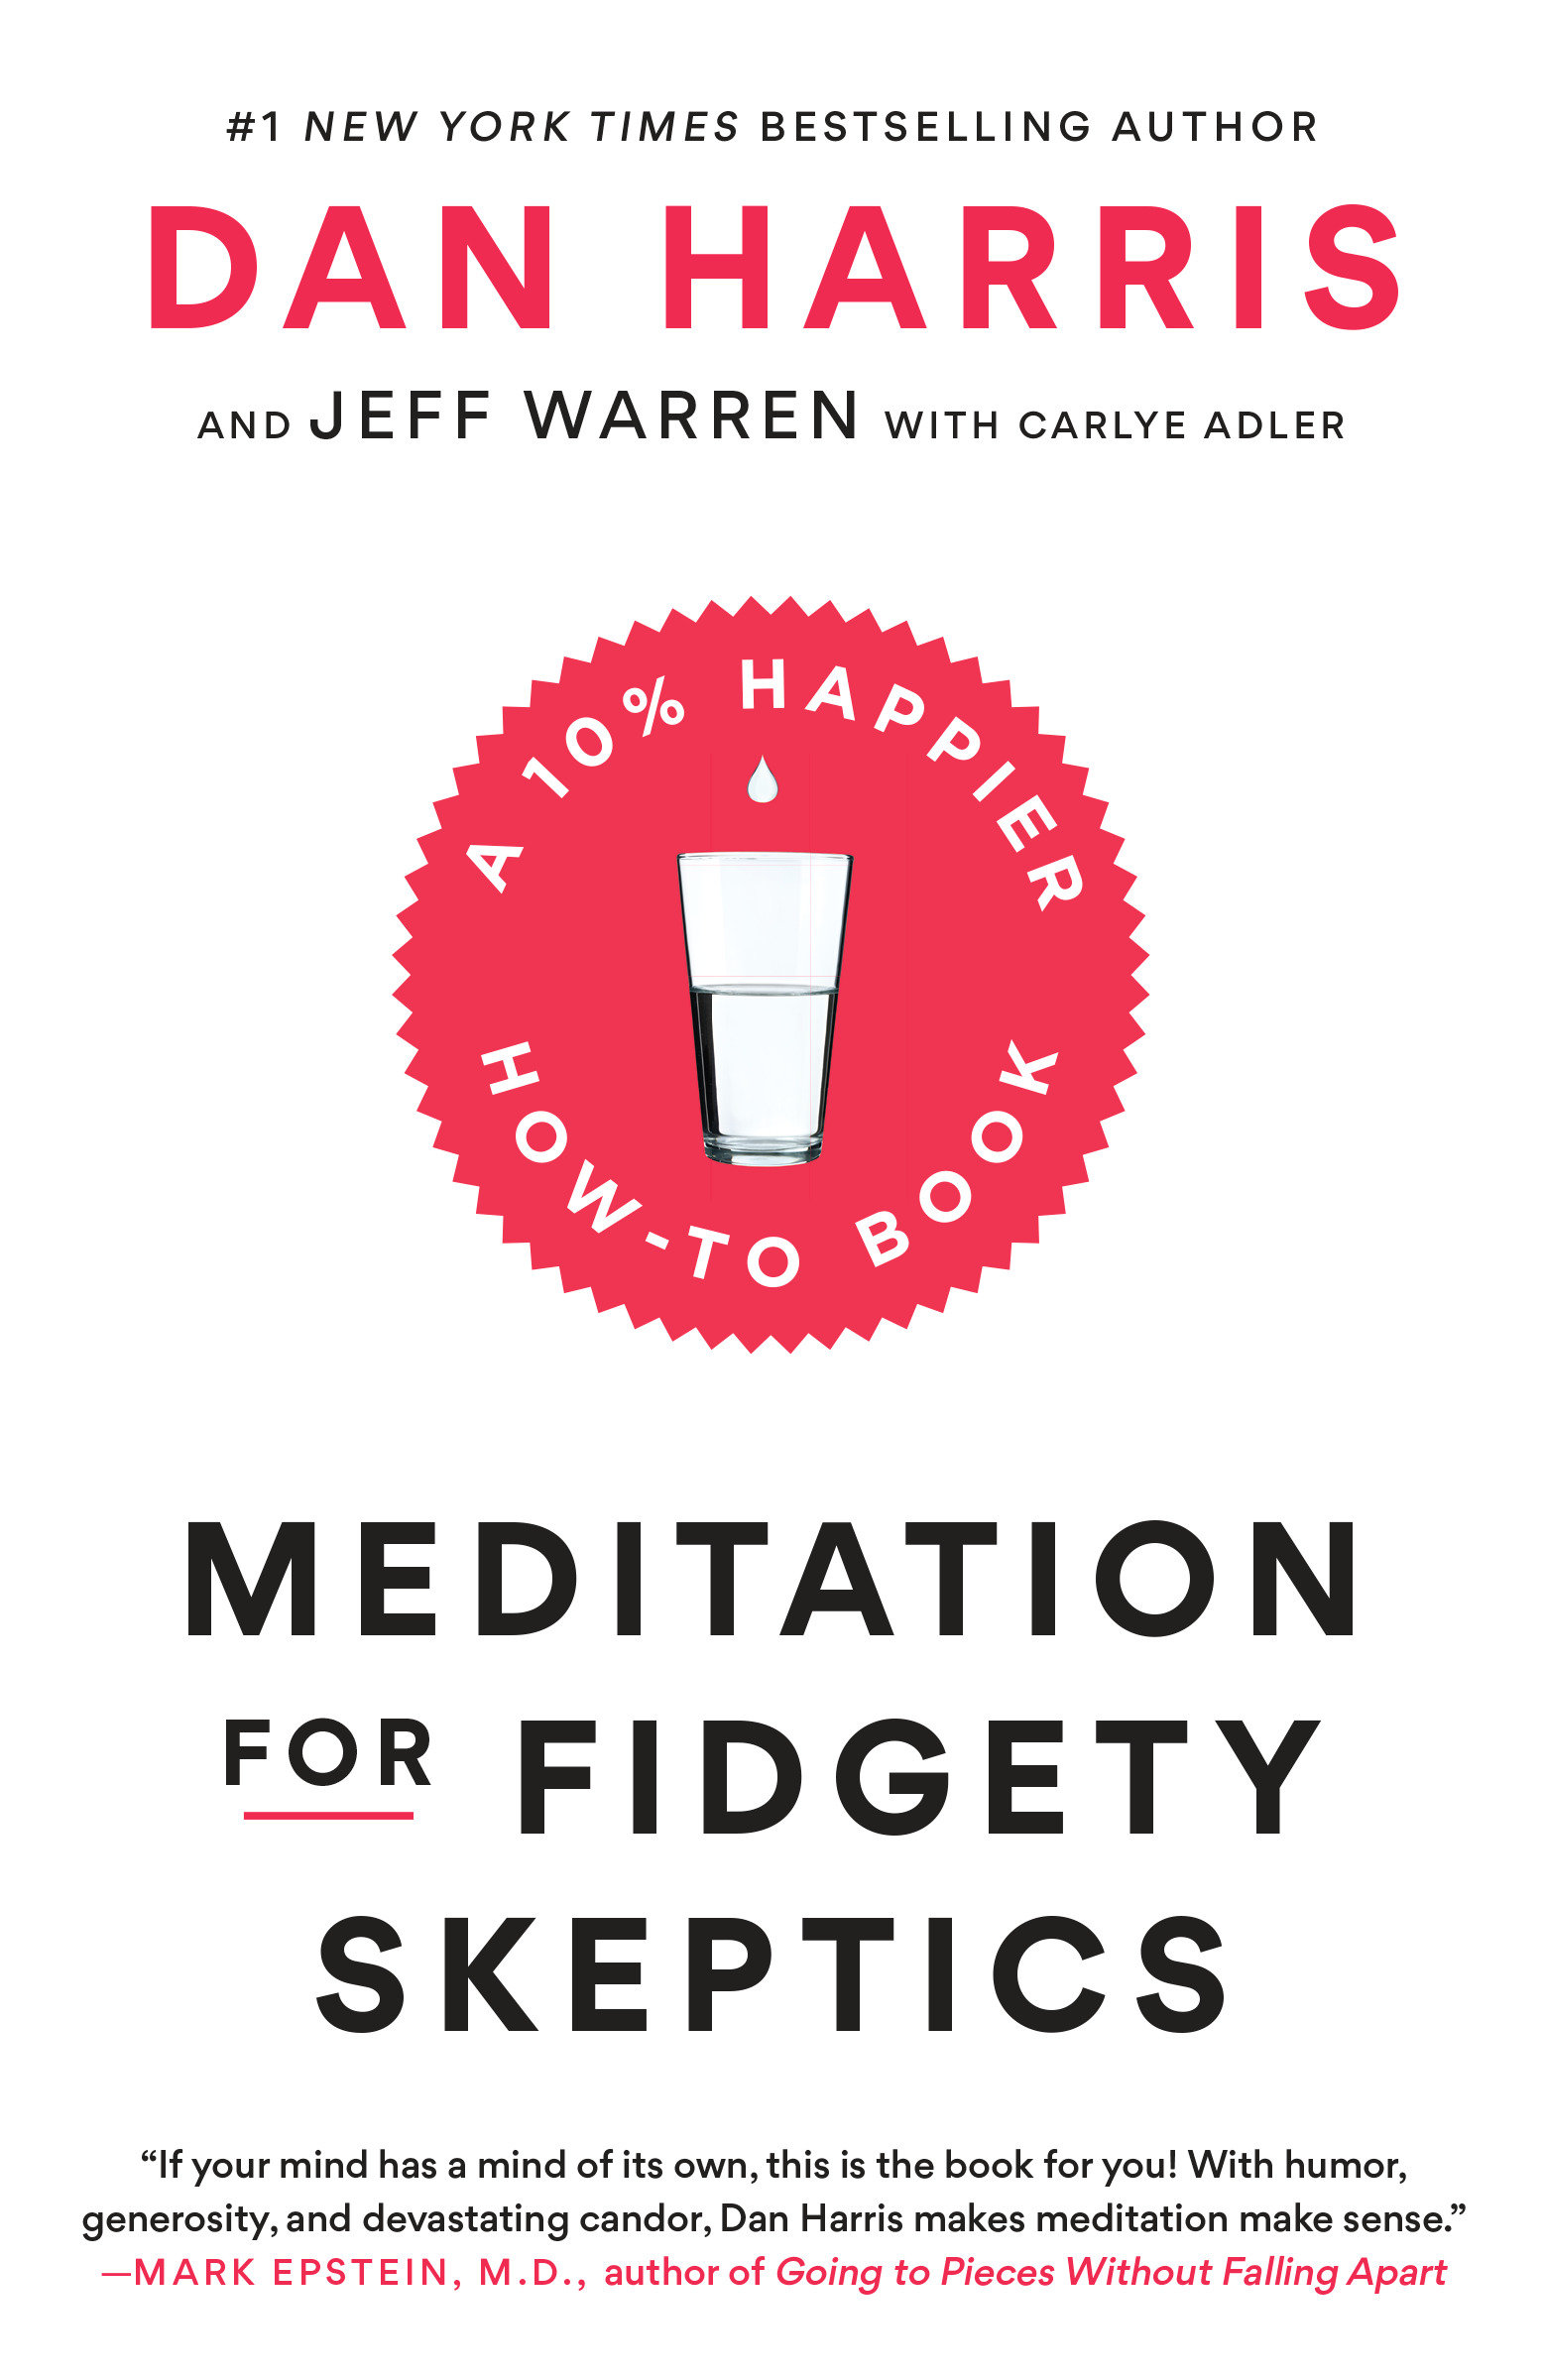 Meditation for Fidgety Skeptics A 10% Happier How-to Book